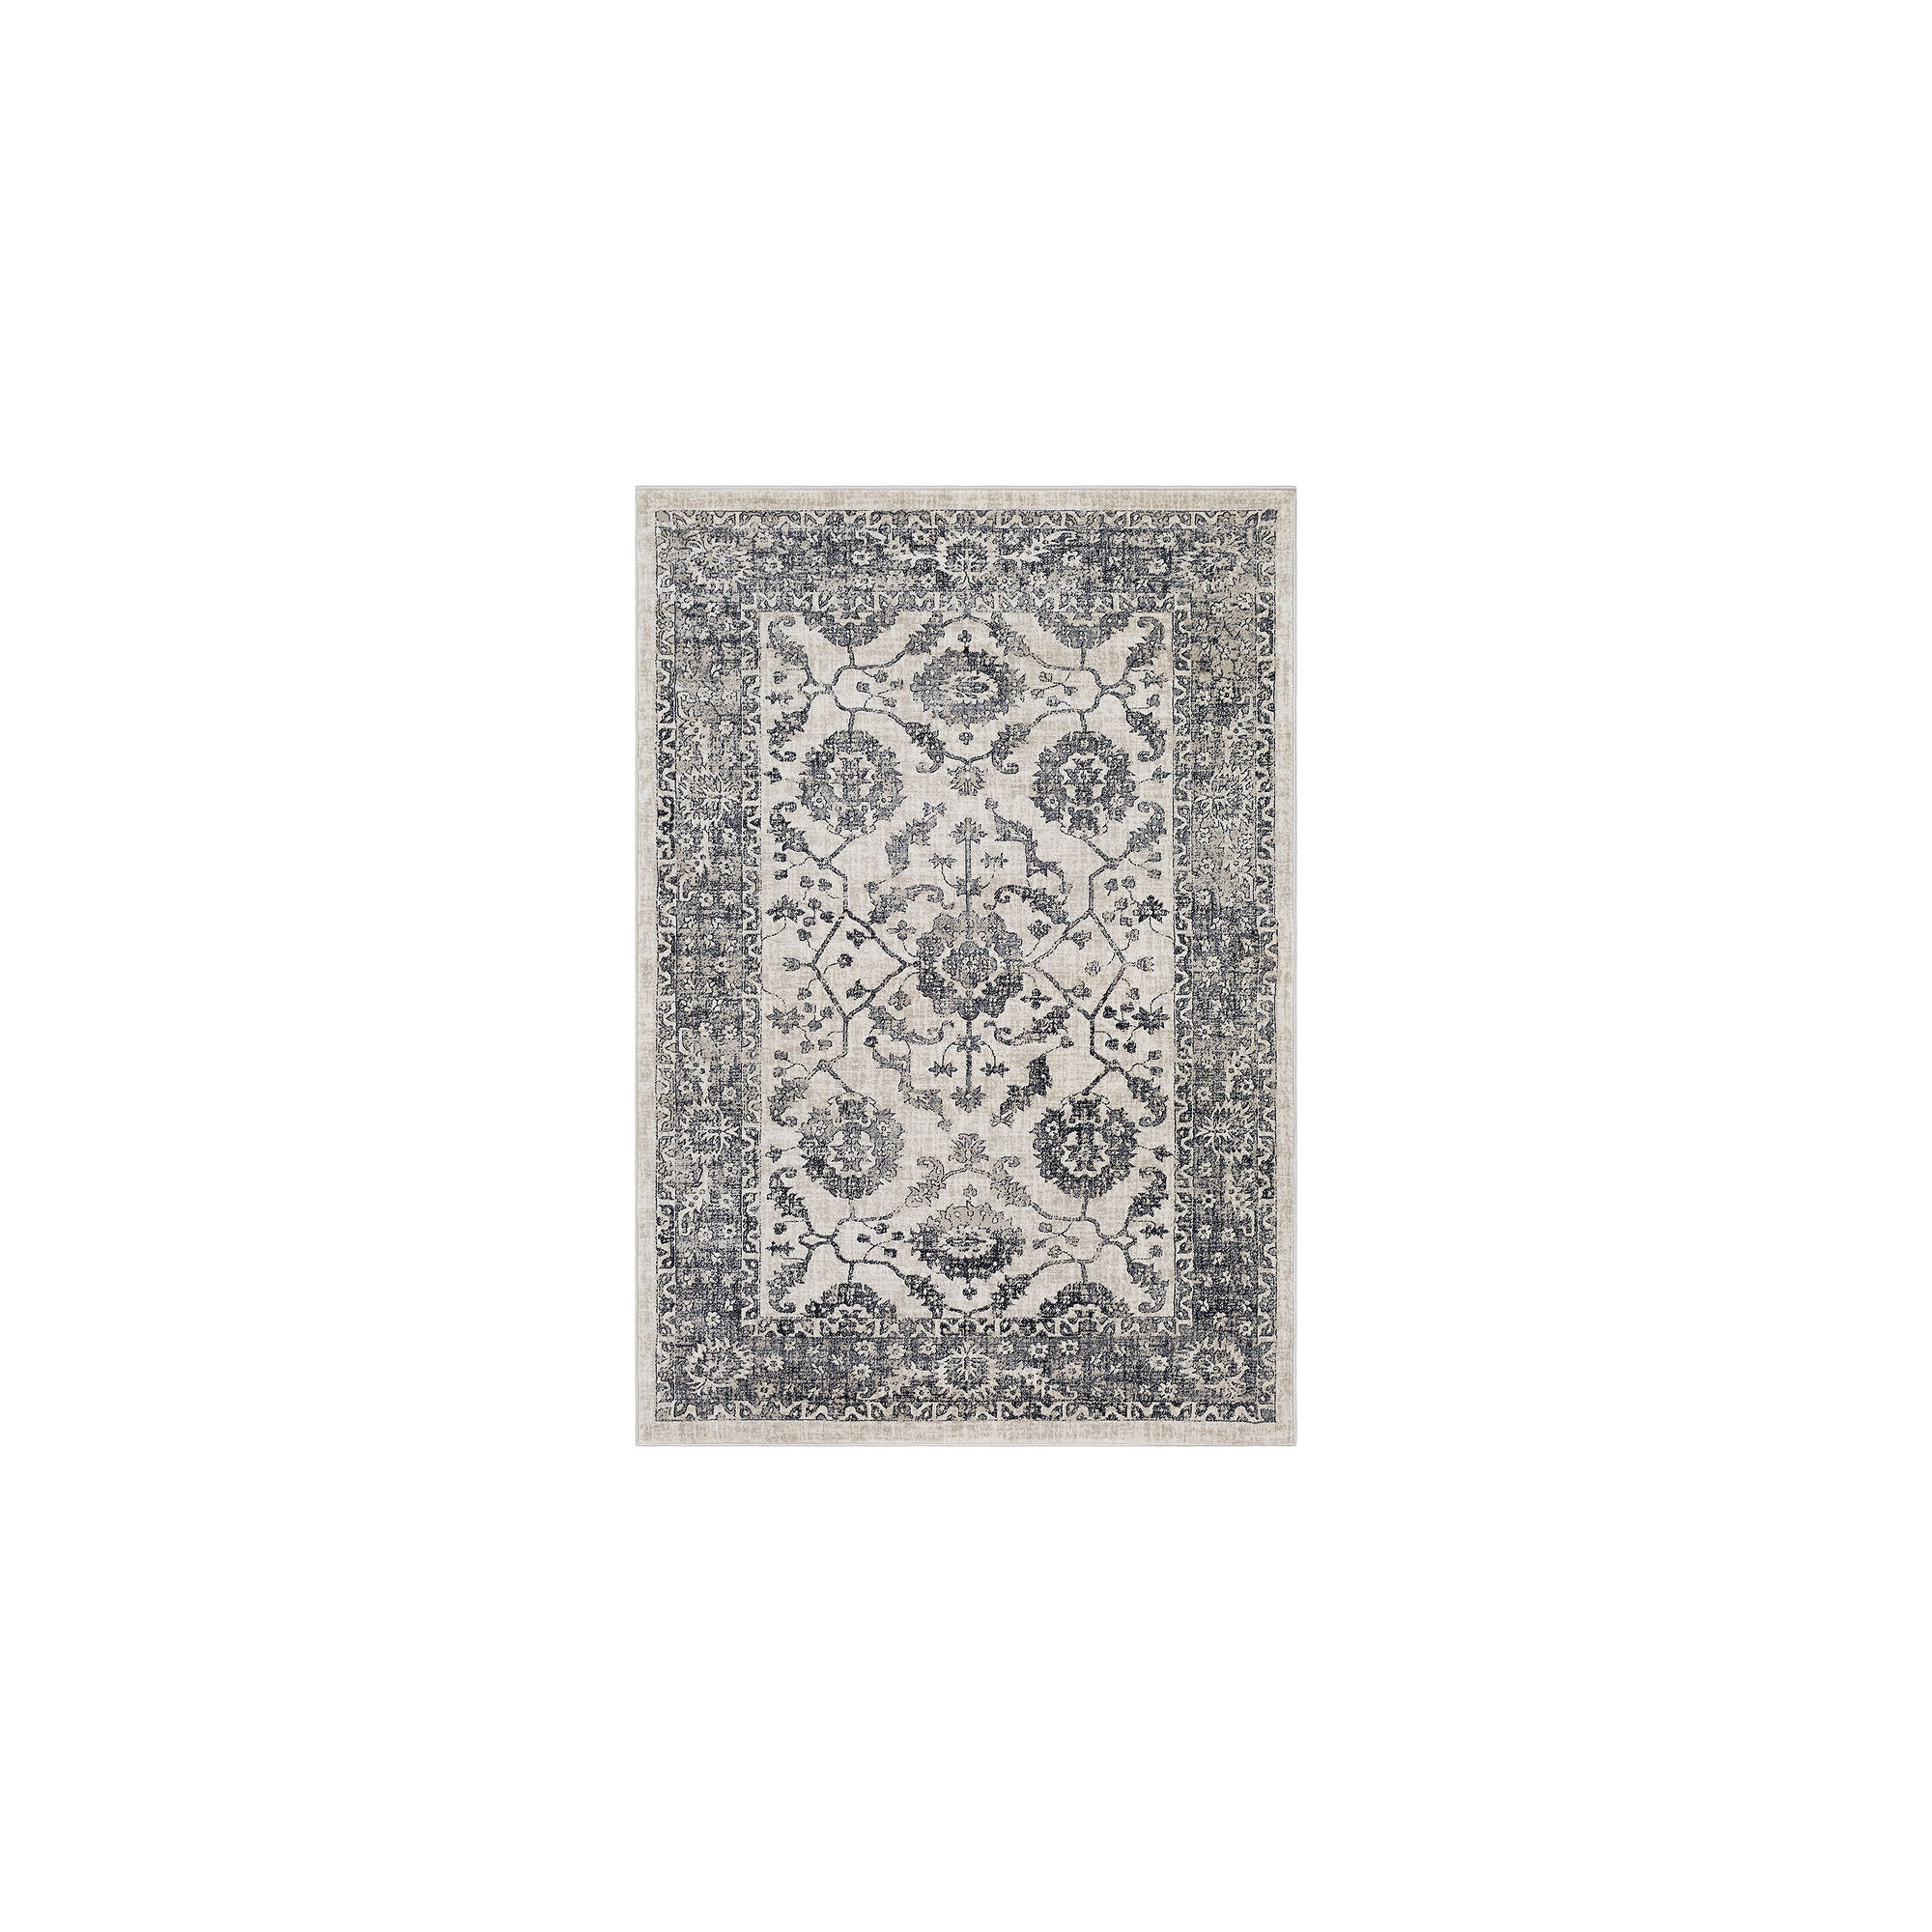 Decor 140 Lenorah Rectangular Rugs